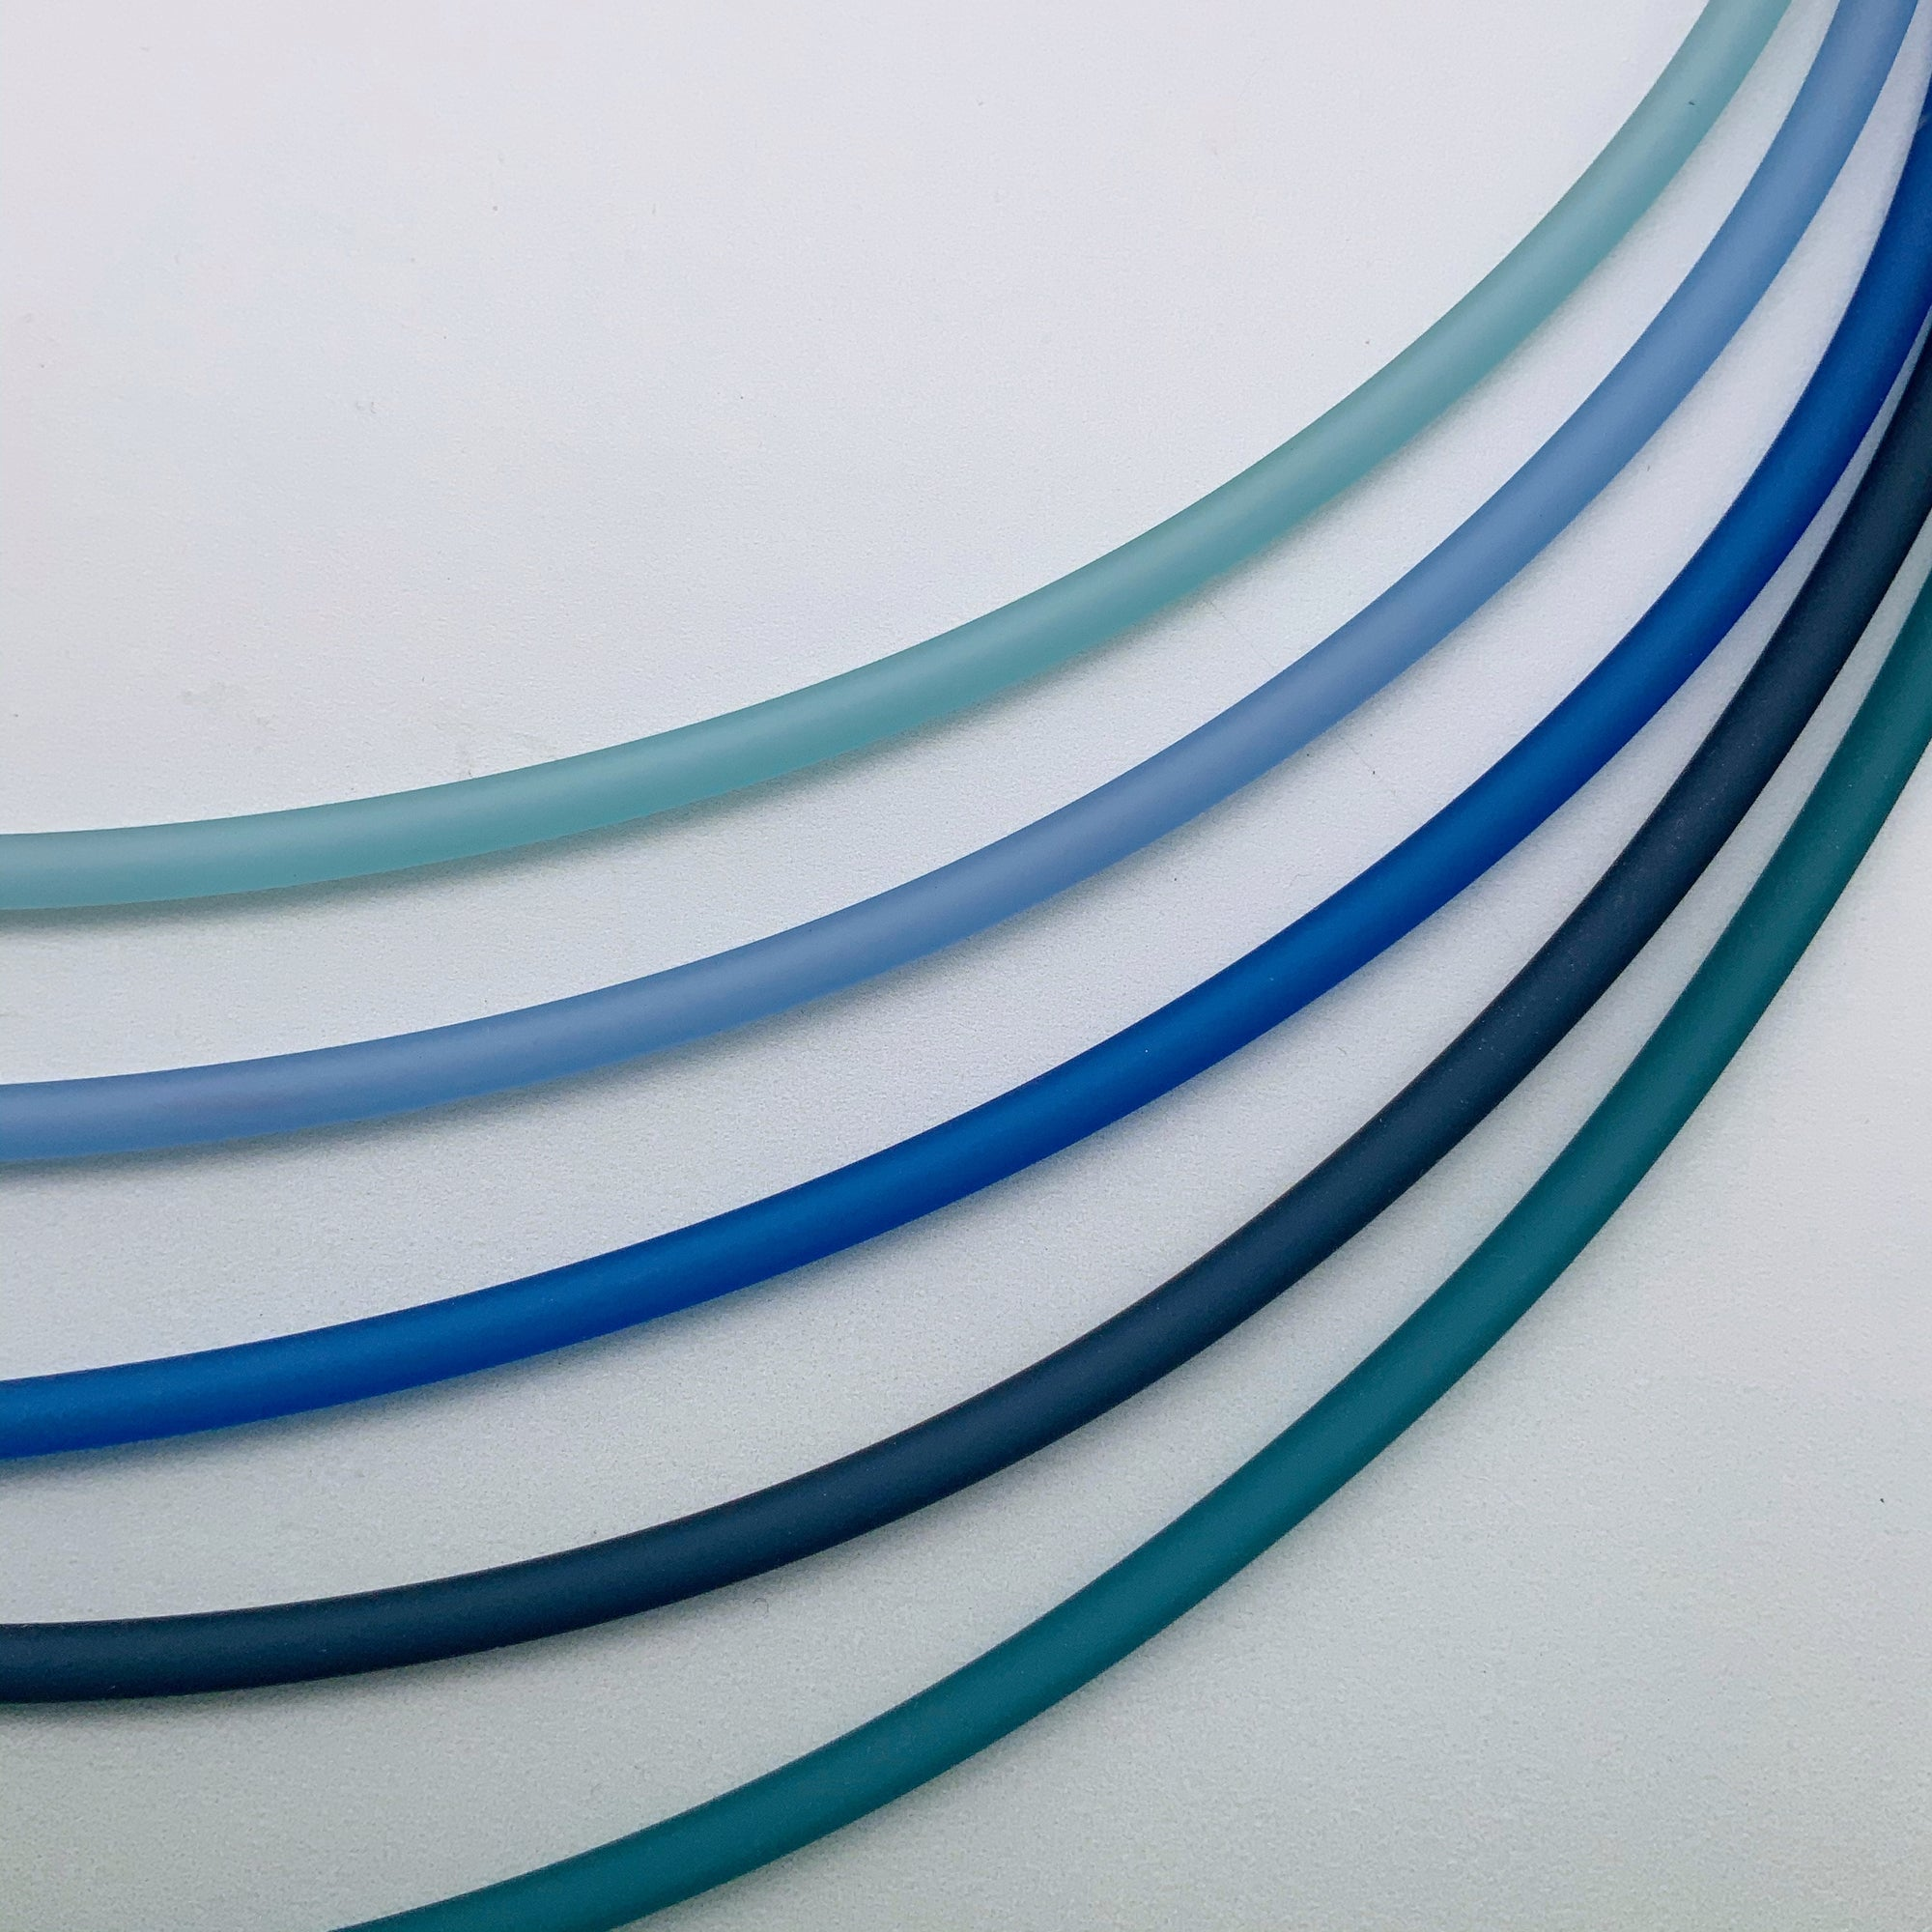 4mm PVC Necklaces in shades of blue